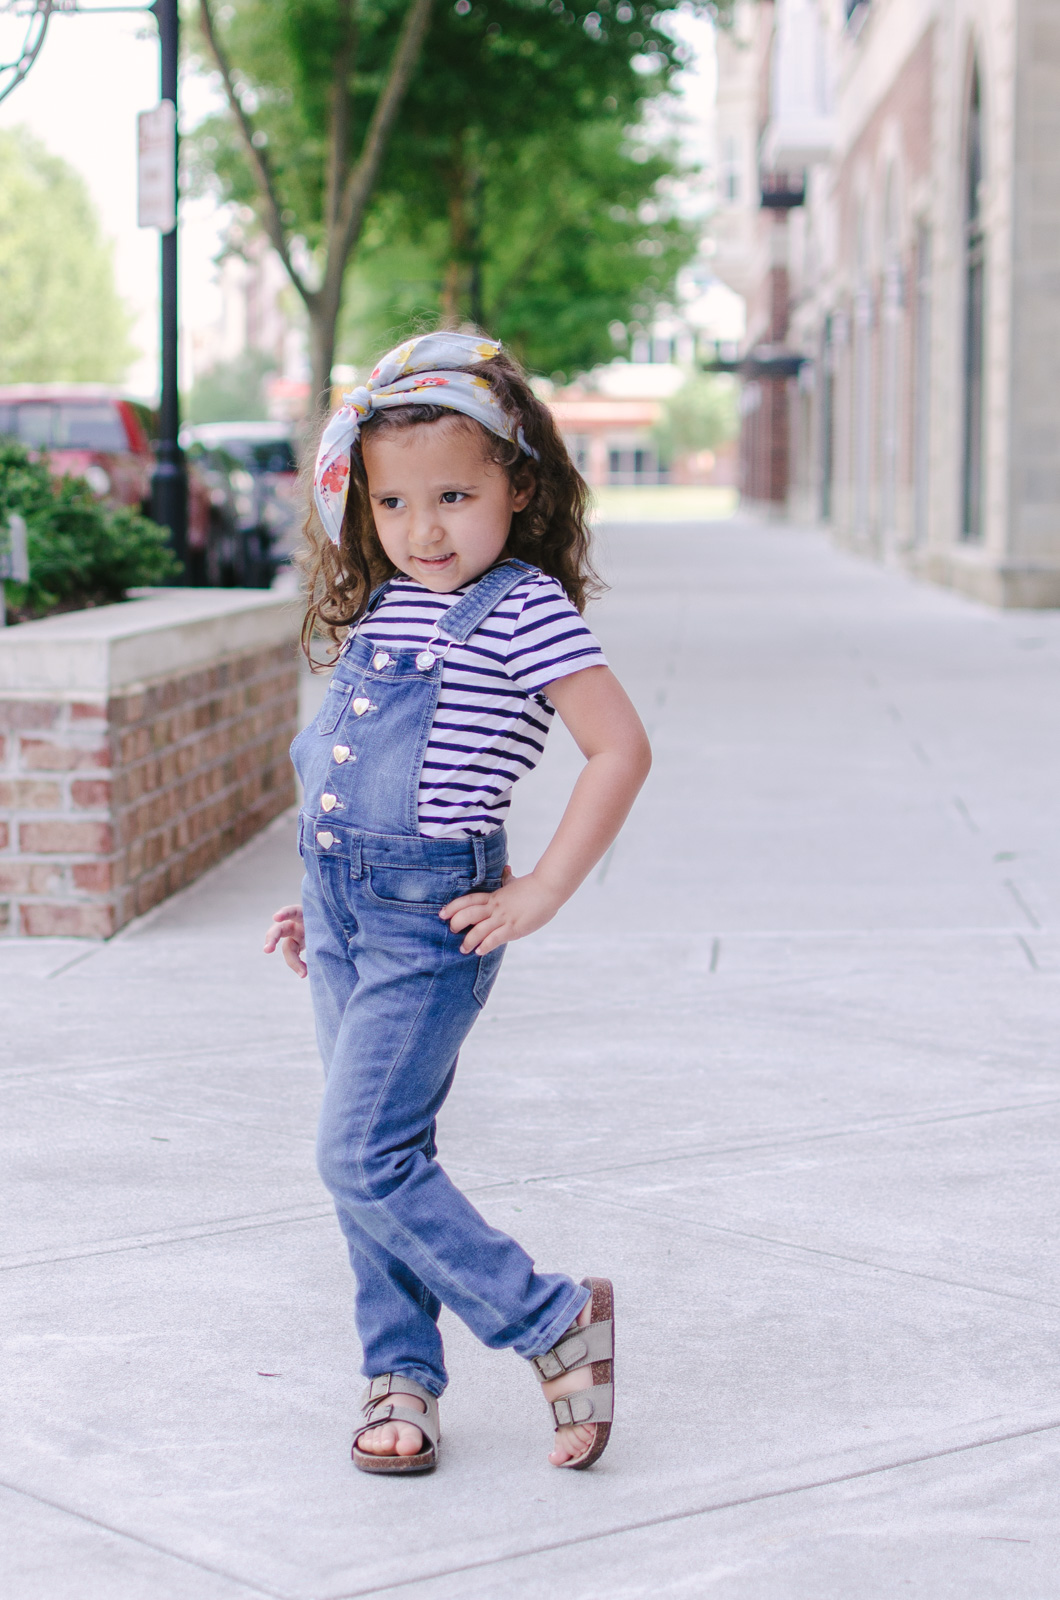 toddler girl overalls outfit - mommy and me matching overalls outfits | bylaurenm.com